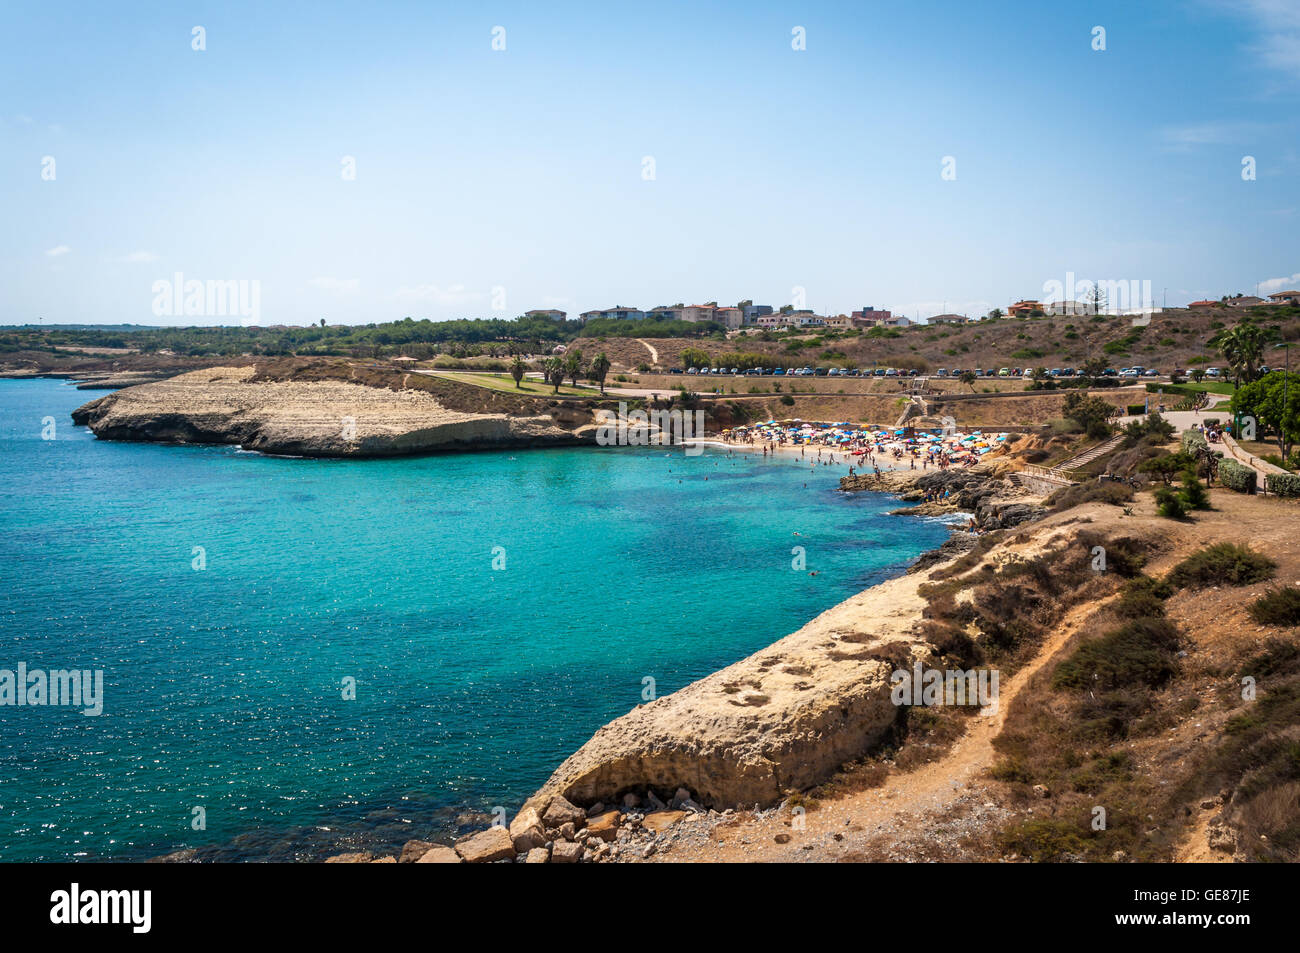 Landscape of beach of Balai, Sardinia, in a sunny day of summer - Stock Image